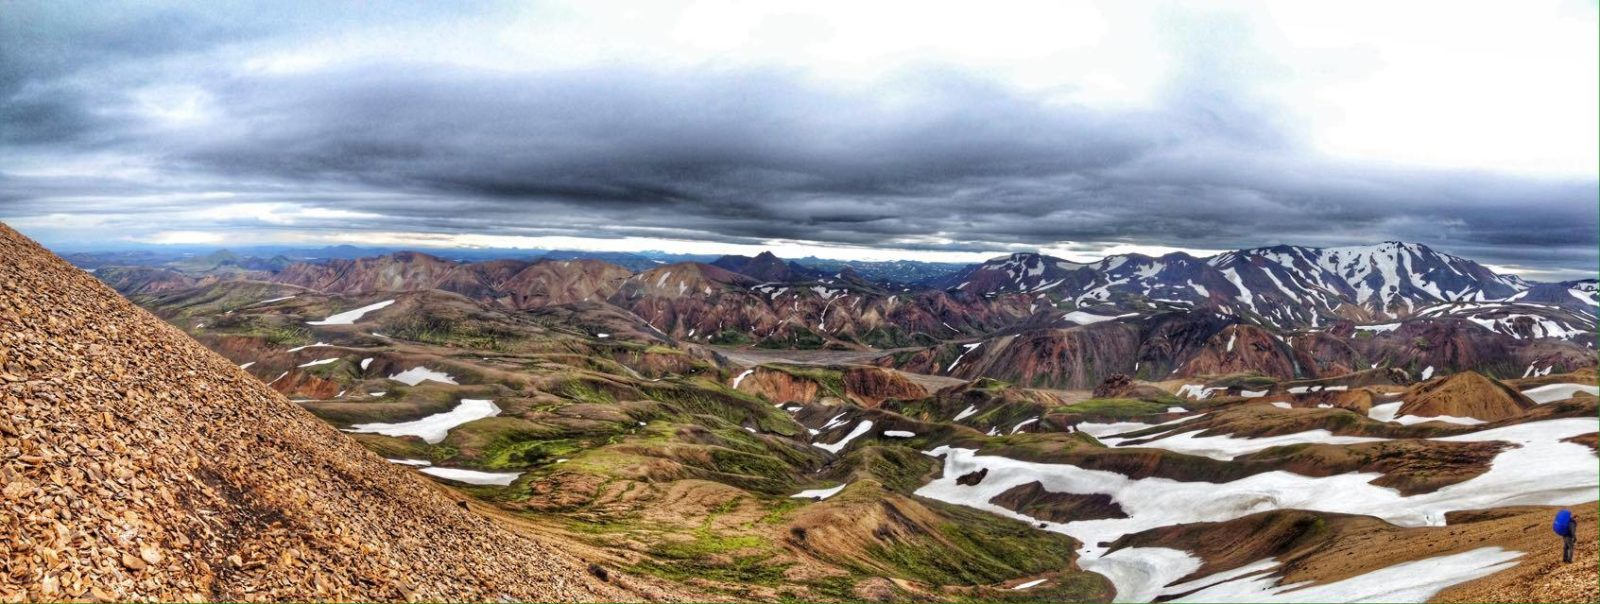 The colors of Landmannalaugar.